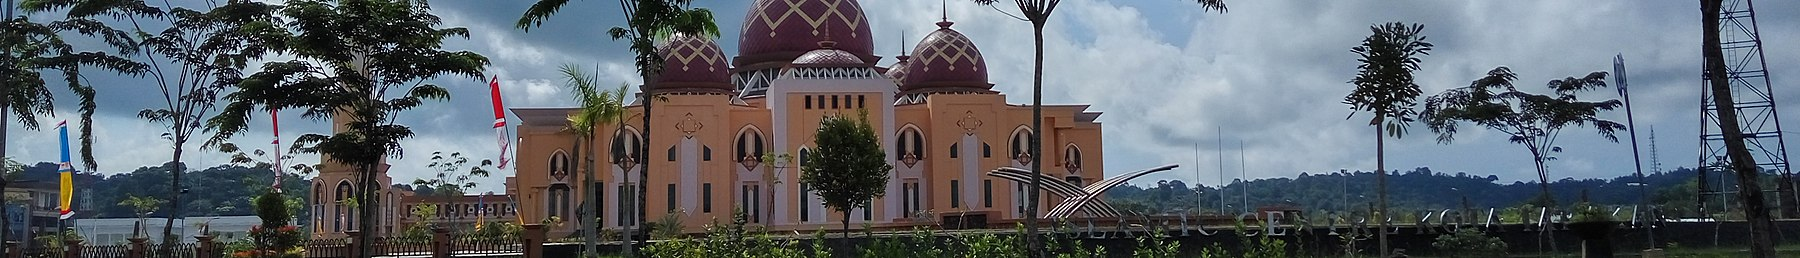 Islamic Center Tarakan (cropped).jpg